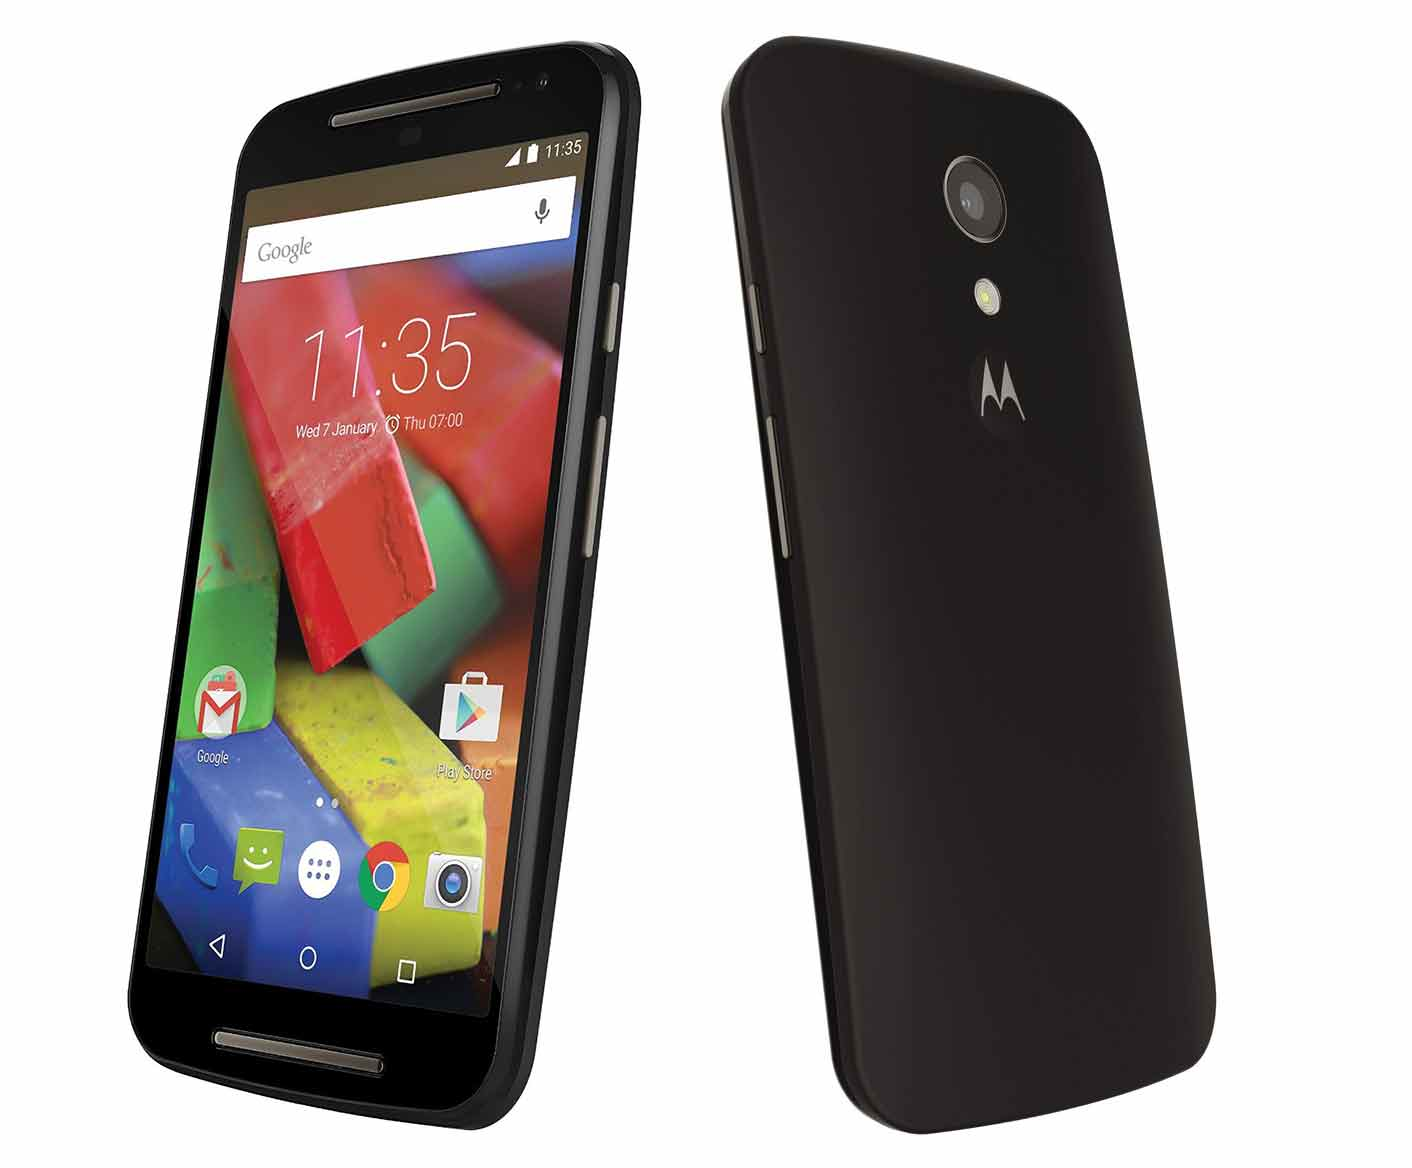 Motorola Moto G 4g 2nd Gen G2 Xt1072 Price Review